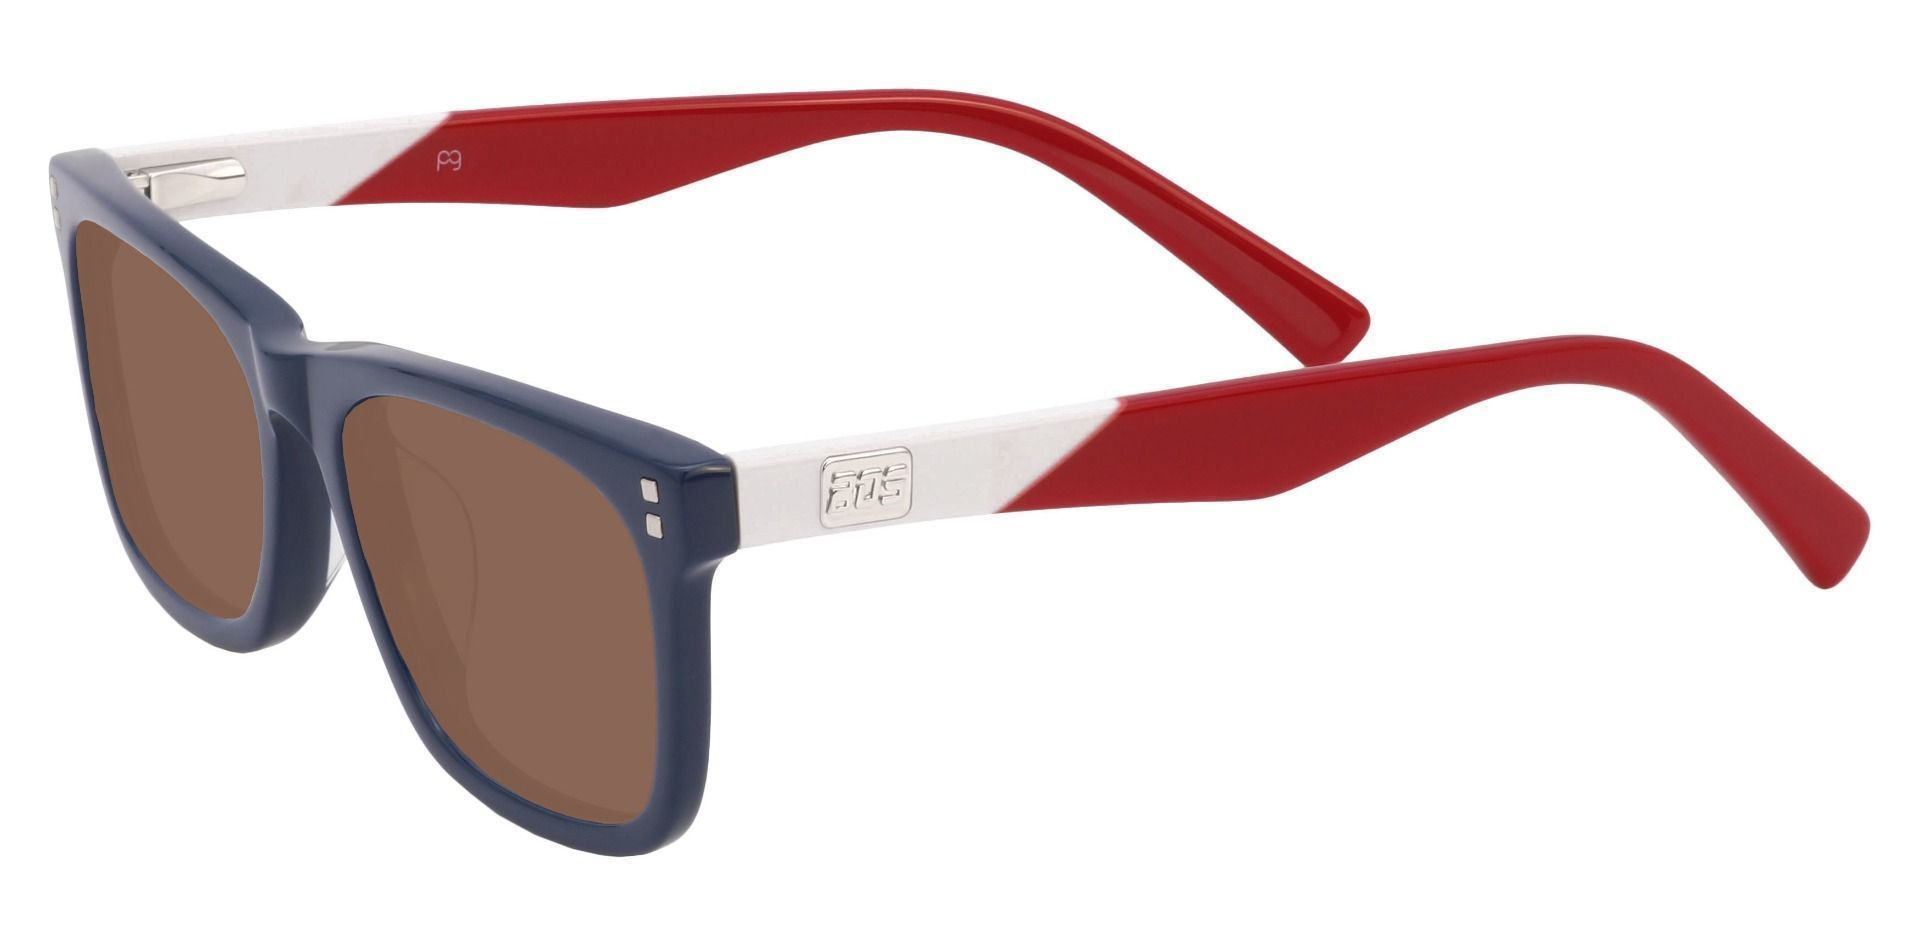 Quincy Rectangle Non-Rx Sunglasses - Blue Frame With Brown Lenses